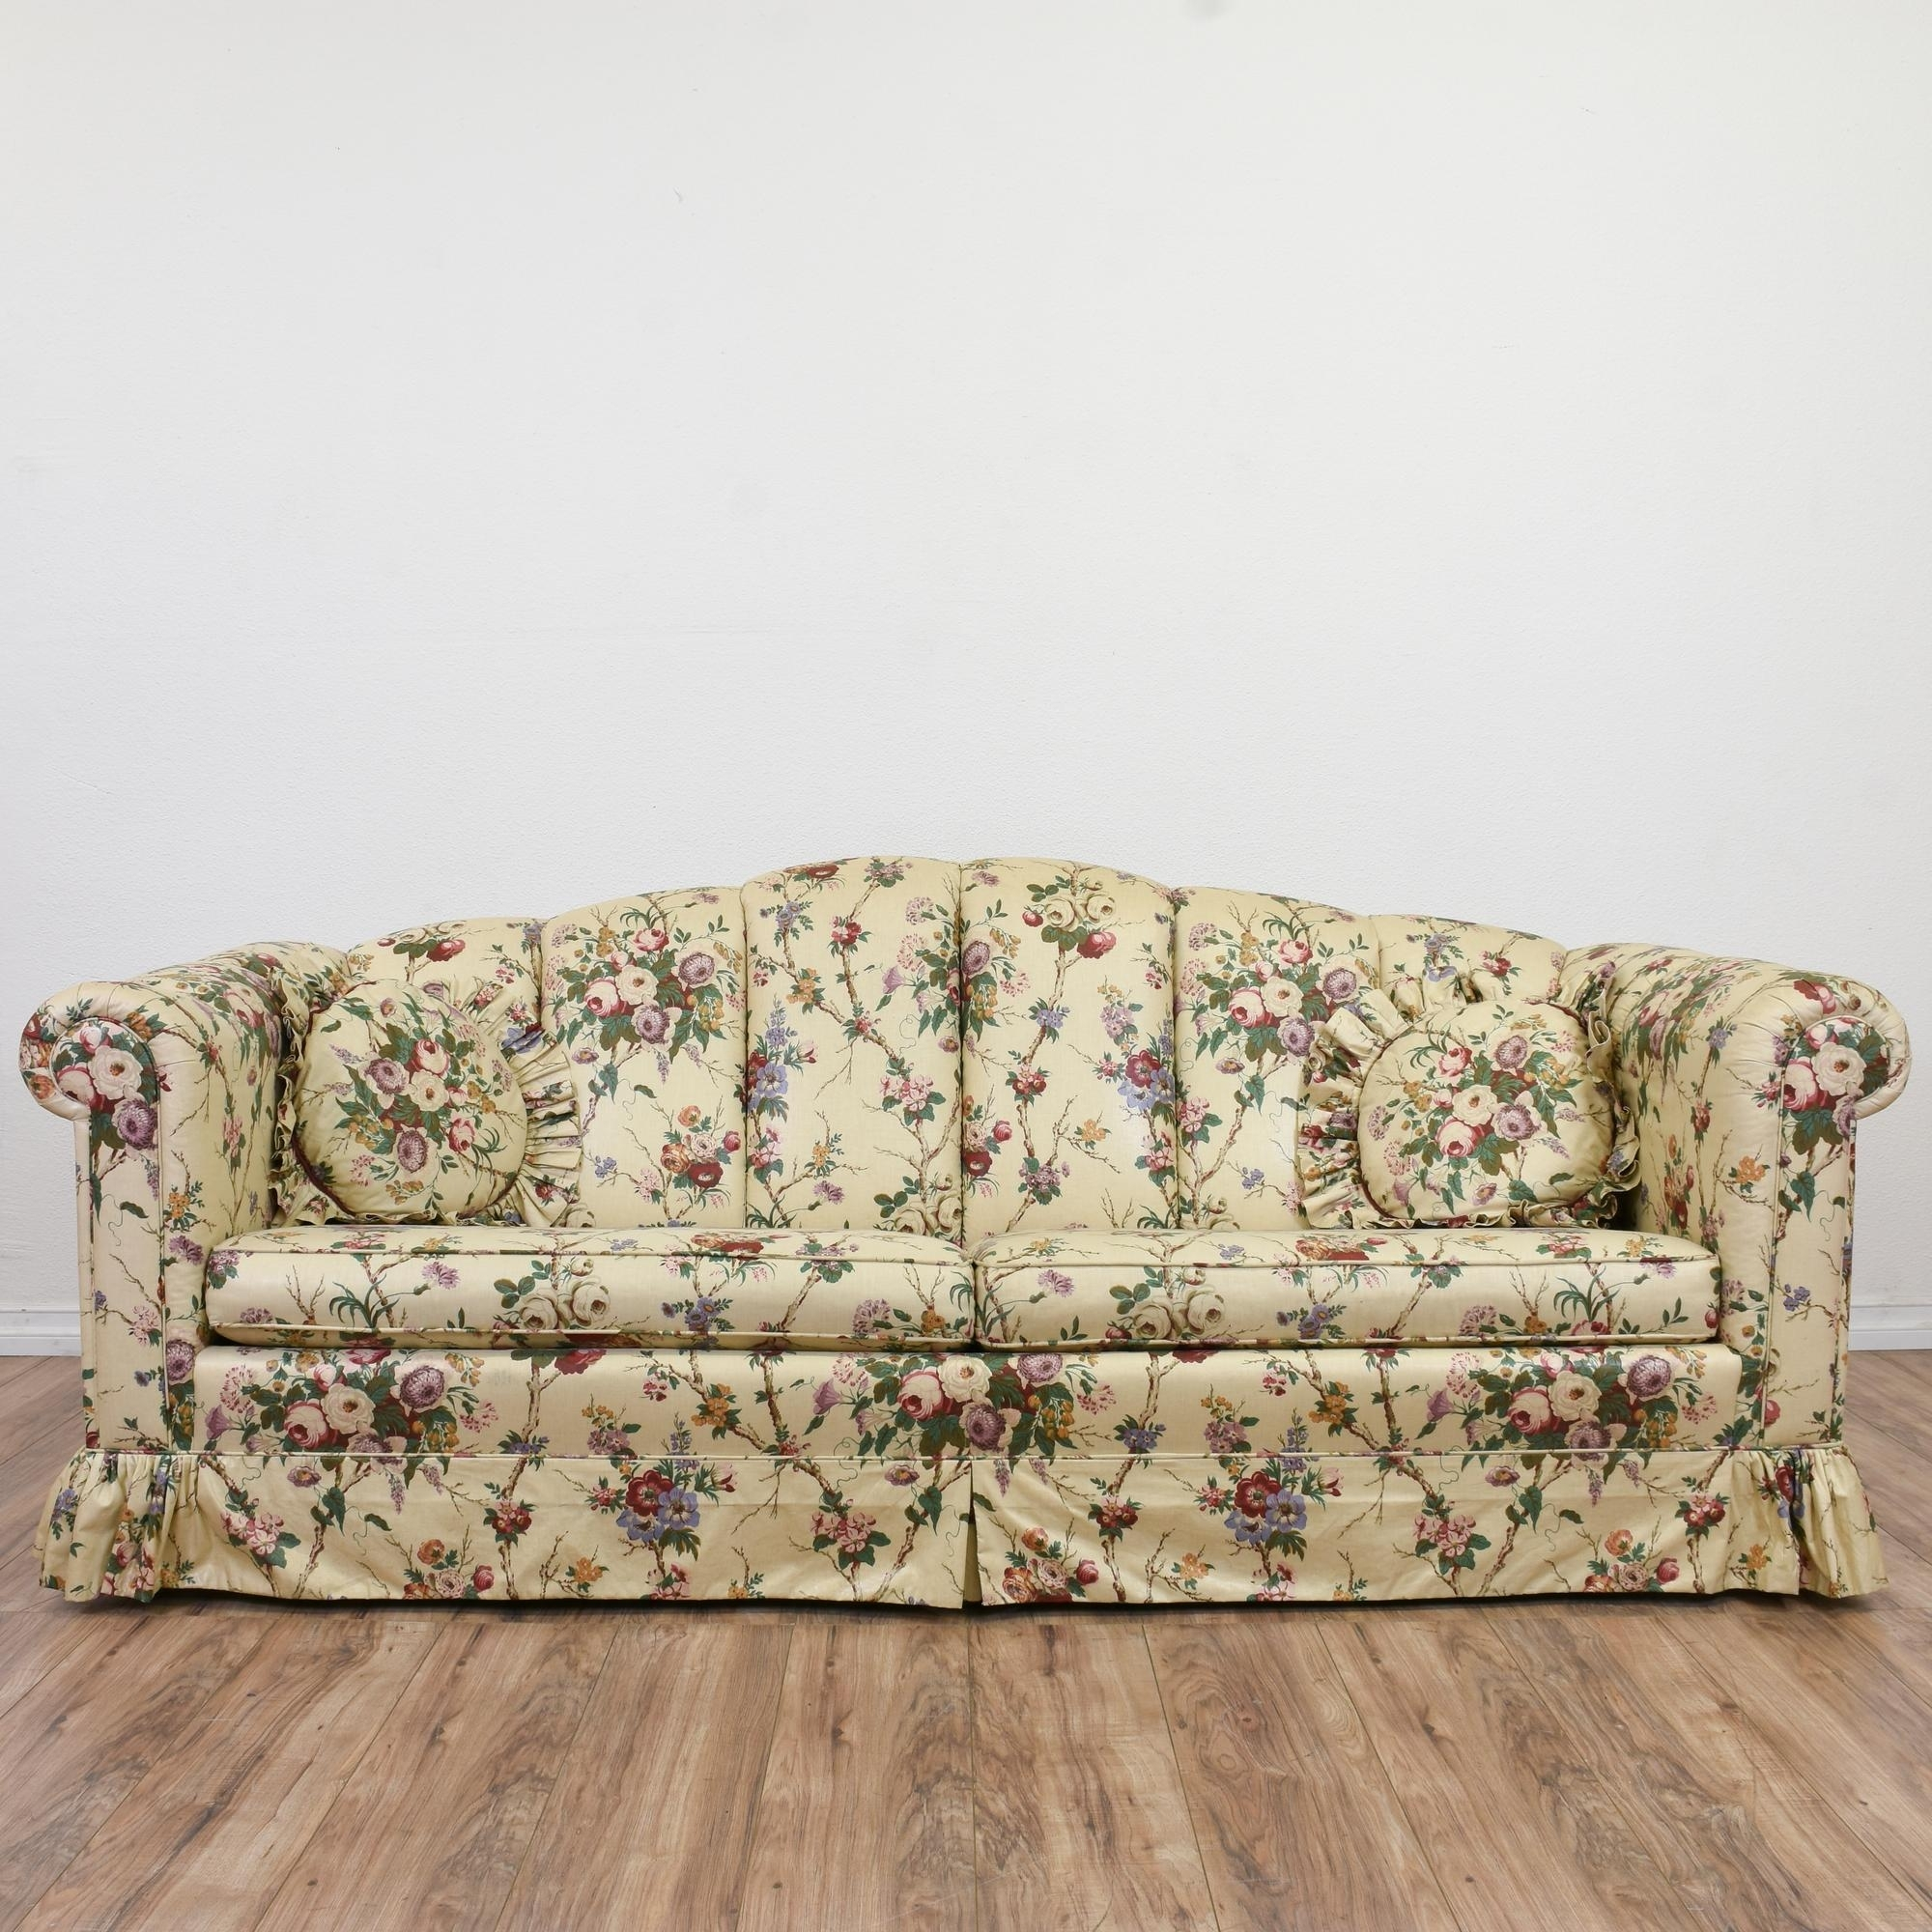 This Sofa Is Upholstered In A Durable Off White Beige, Pink And Pertaining To Popular Chintz Sofas (View 2 of 20)